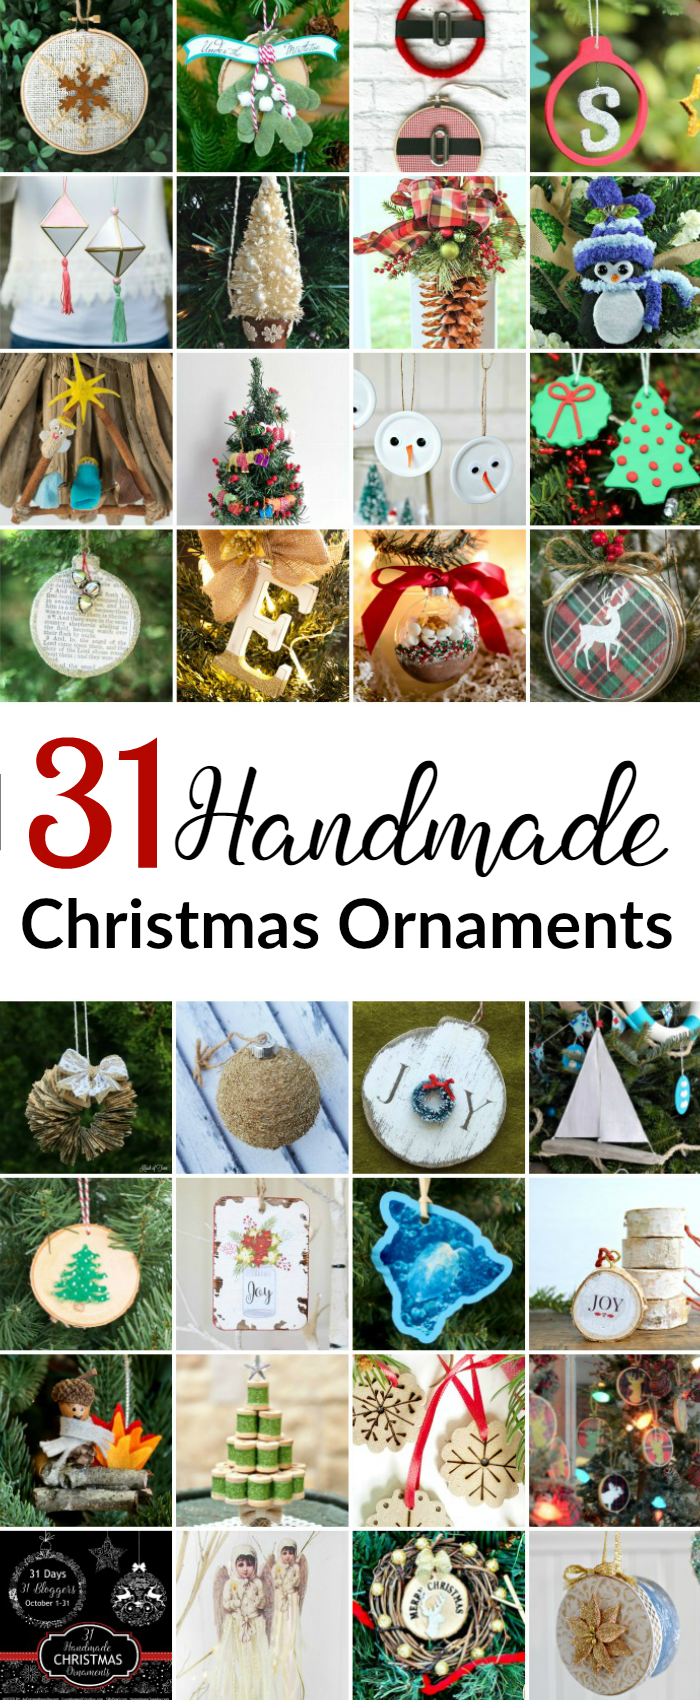 Diy Rustic Glitter Ornament The Easy Way Handmade Christmas Ornaments Christmas Ornaments Christmas Ornaments To Make